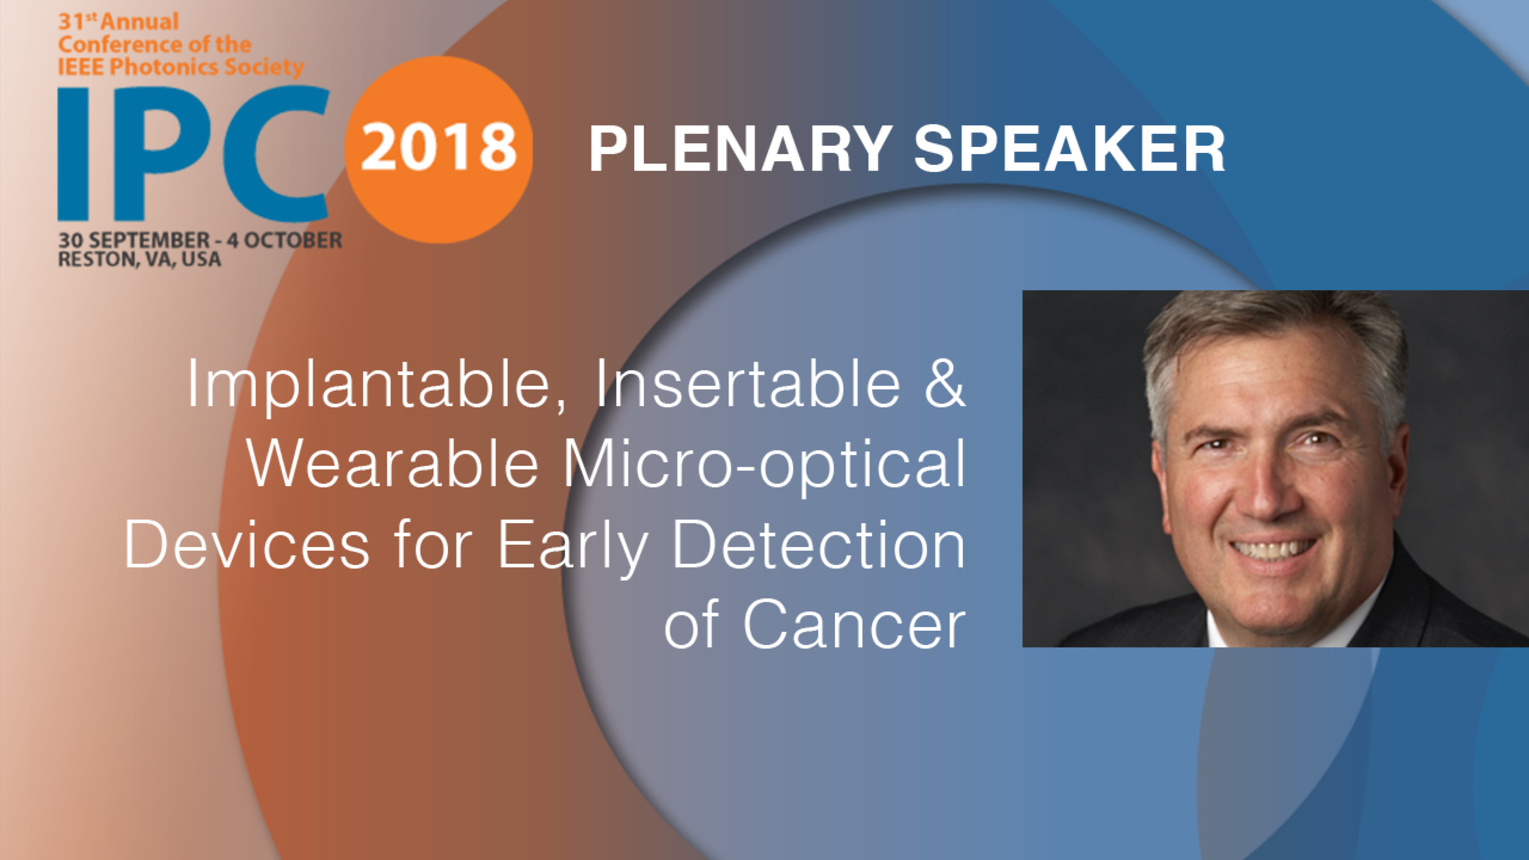 Implantable, Insertable and Wearable Micro-optical Devices for Early Detection of Cancer - IEEE Photonics Conference 2018